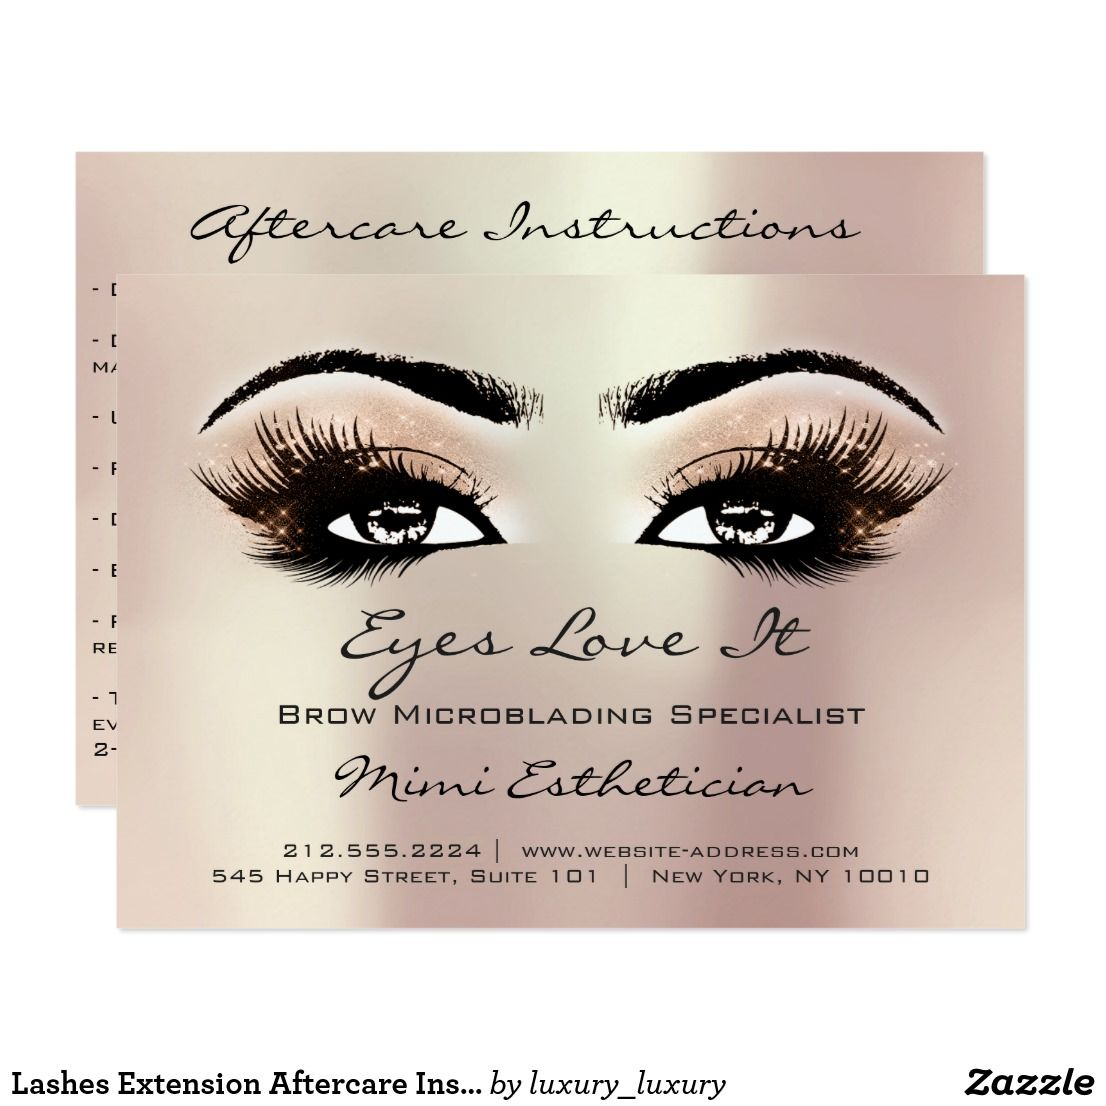 Lashes Extension Aftercare Instructions Peach Rose